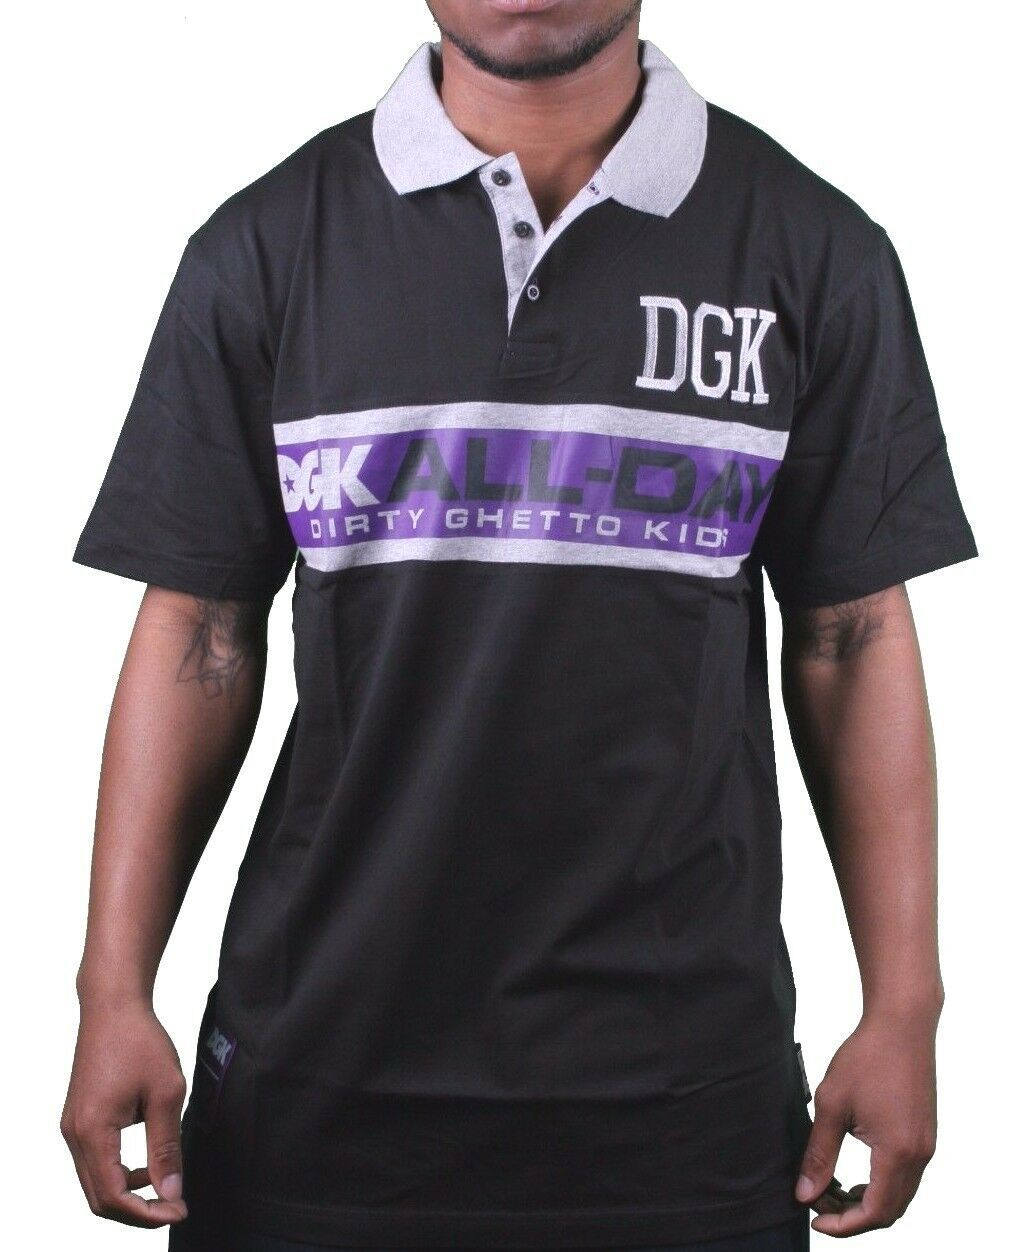 DGK Skateboarding All Day Black Grey Purple Sport Polo Shirt Dirty Ghetto Kids